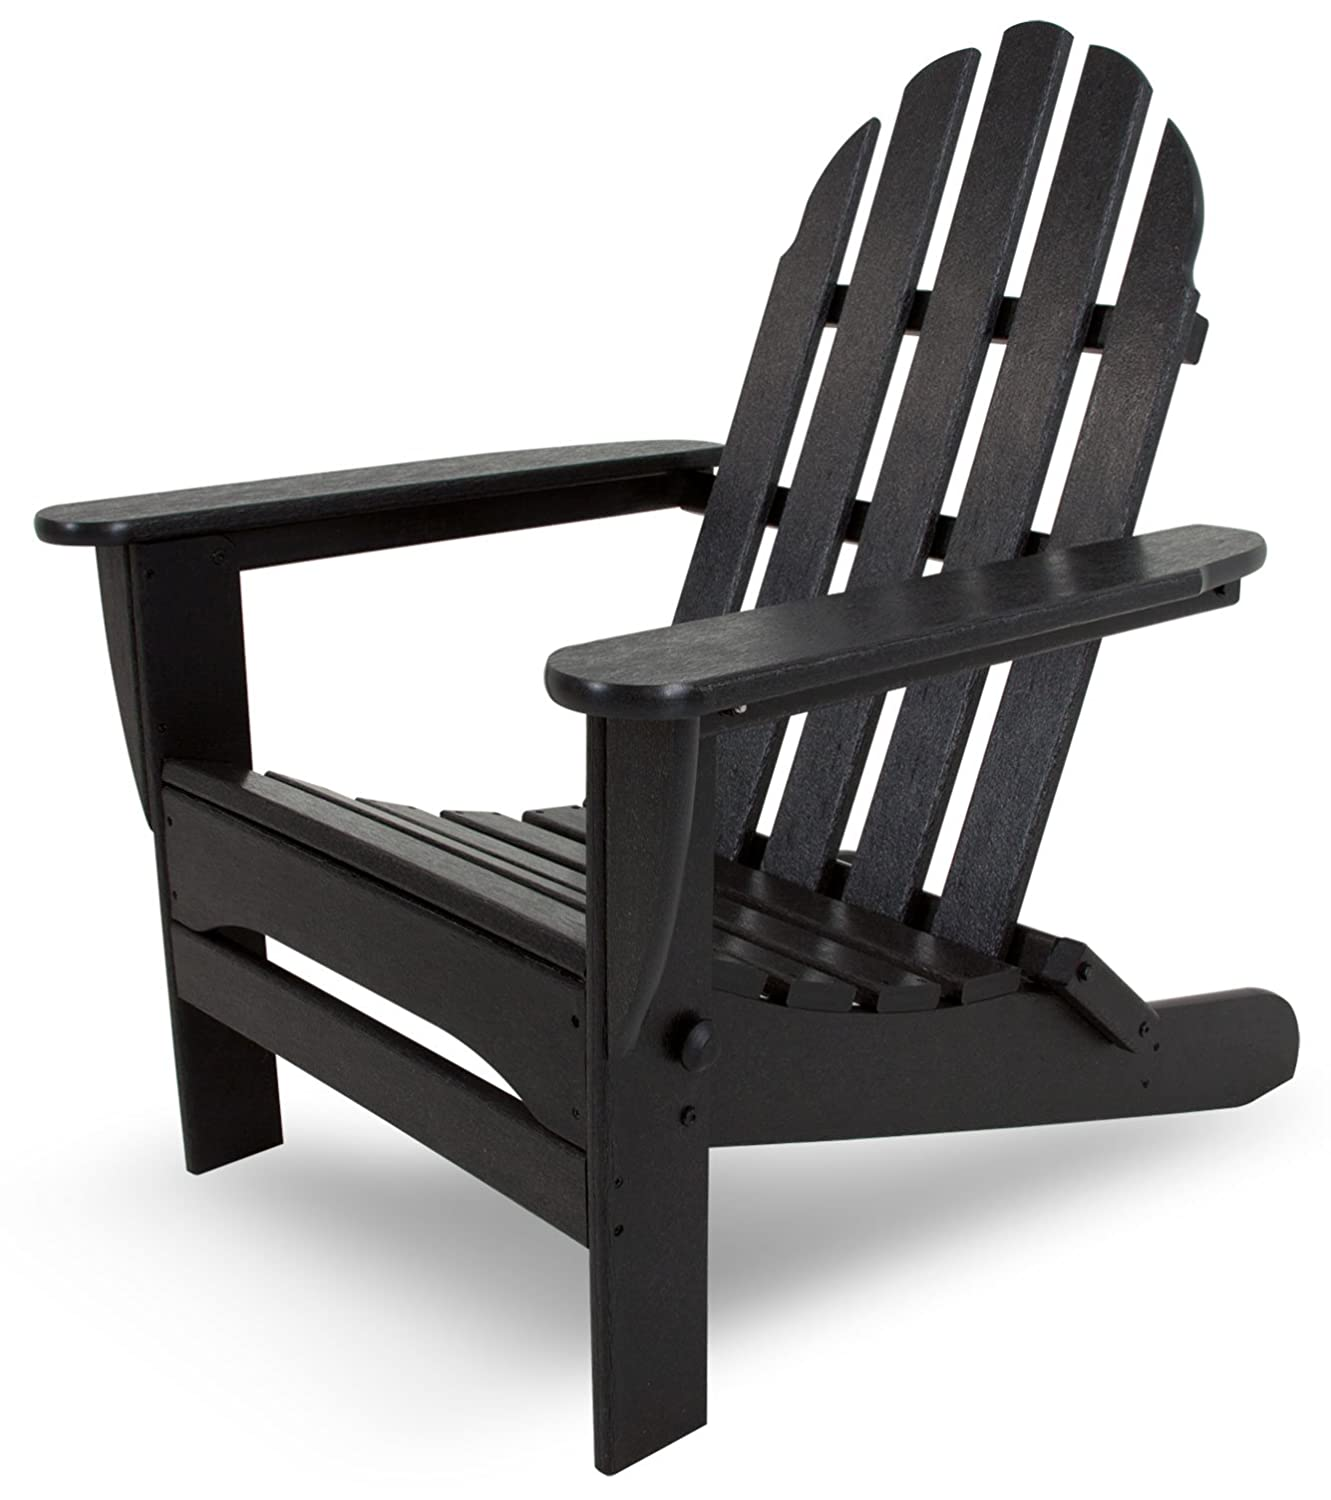 Top 10 Best Polywood Adirondack Chairs